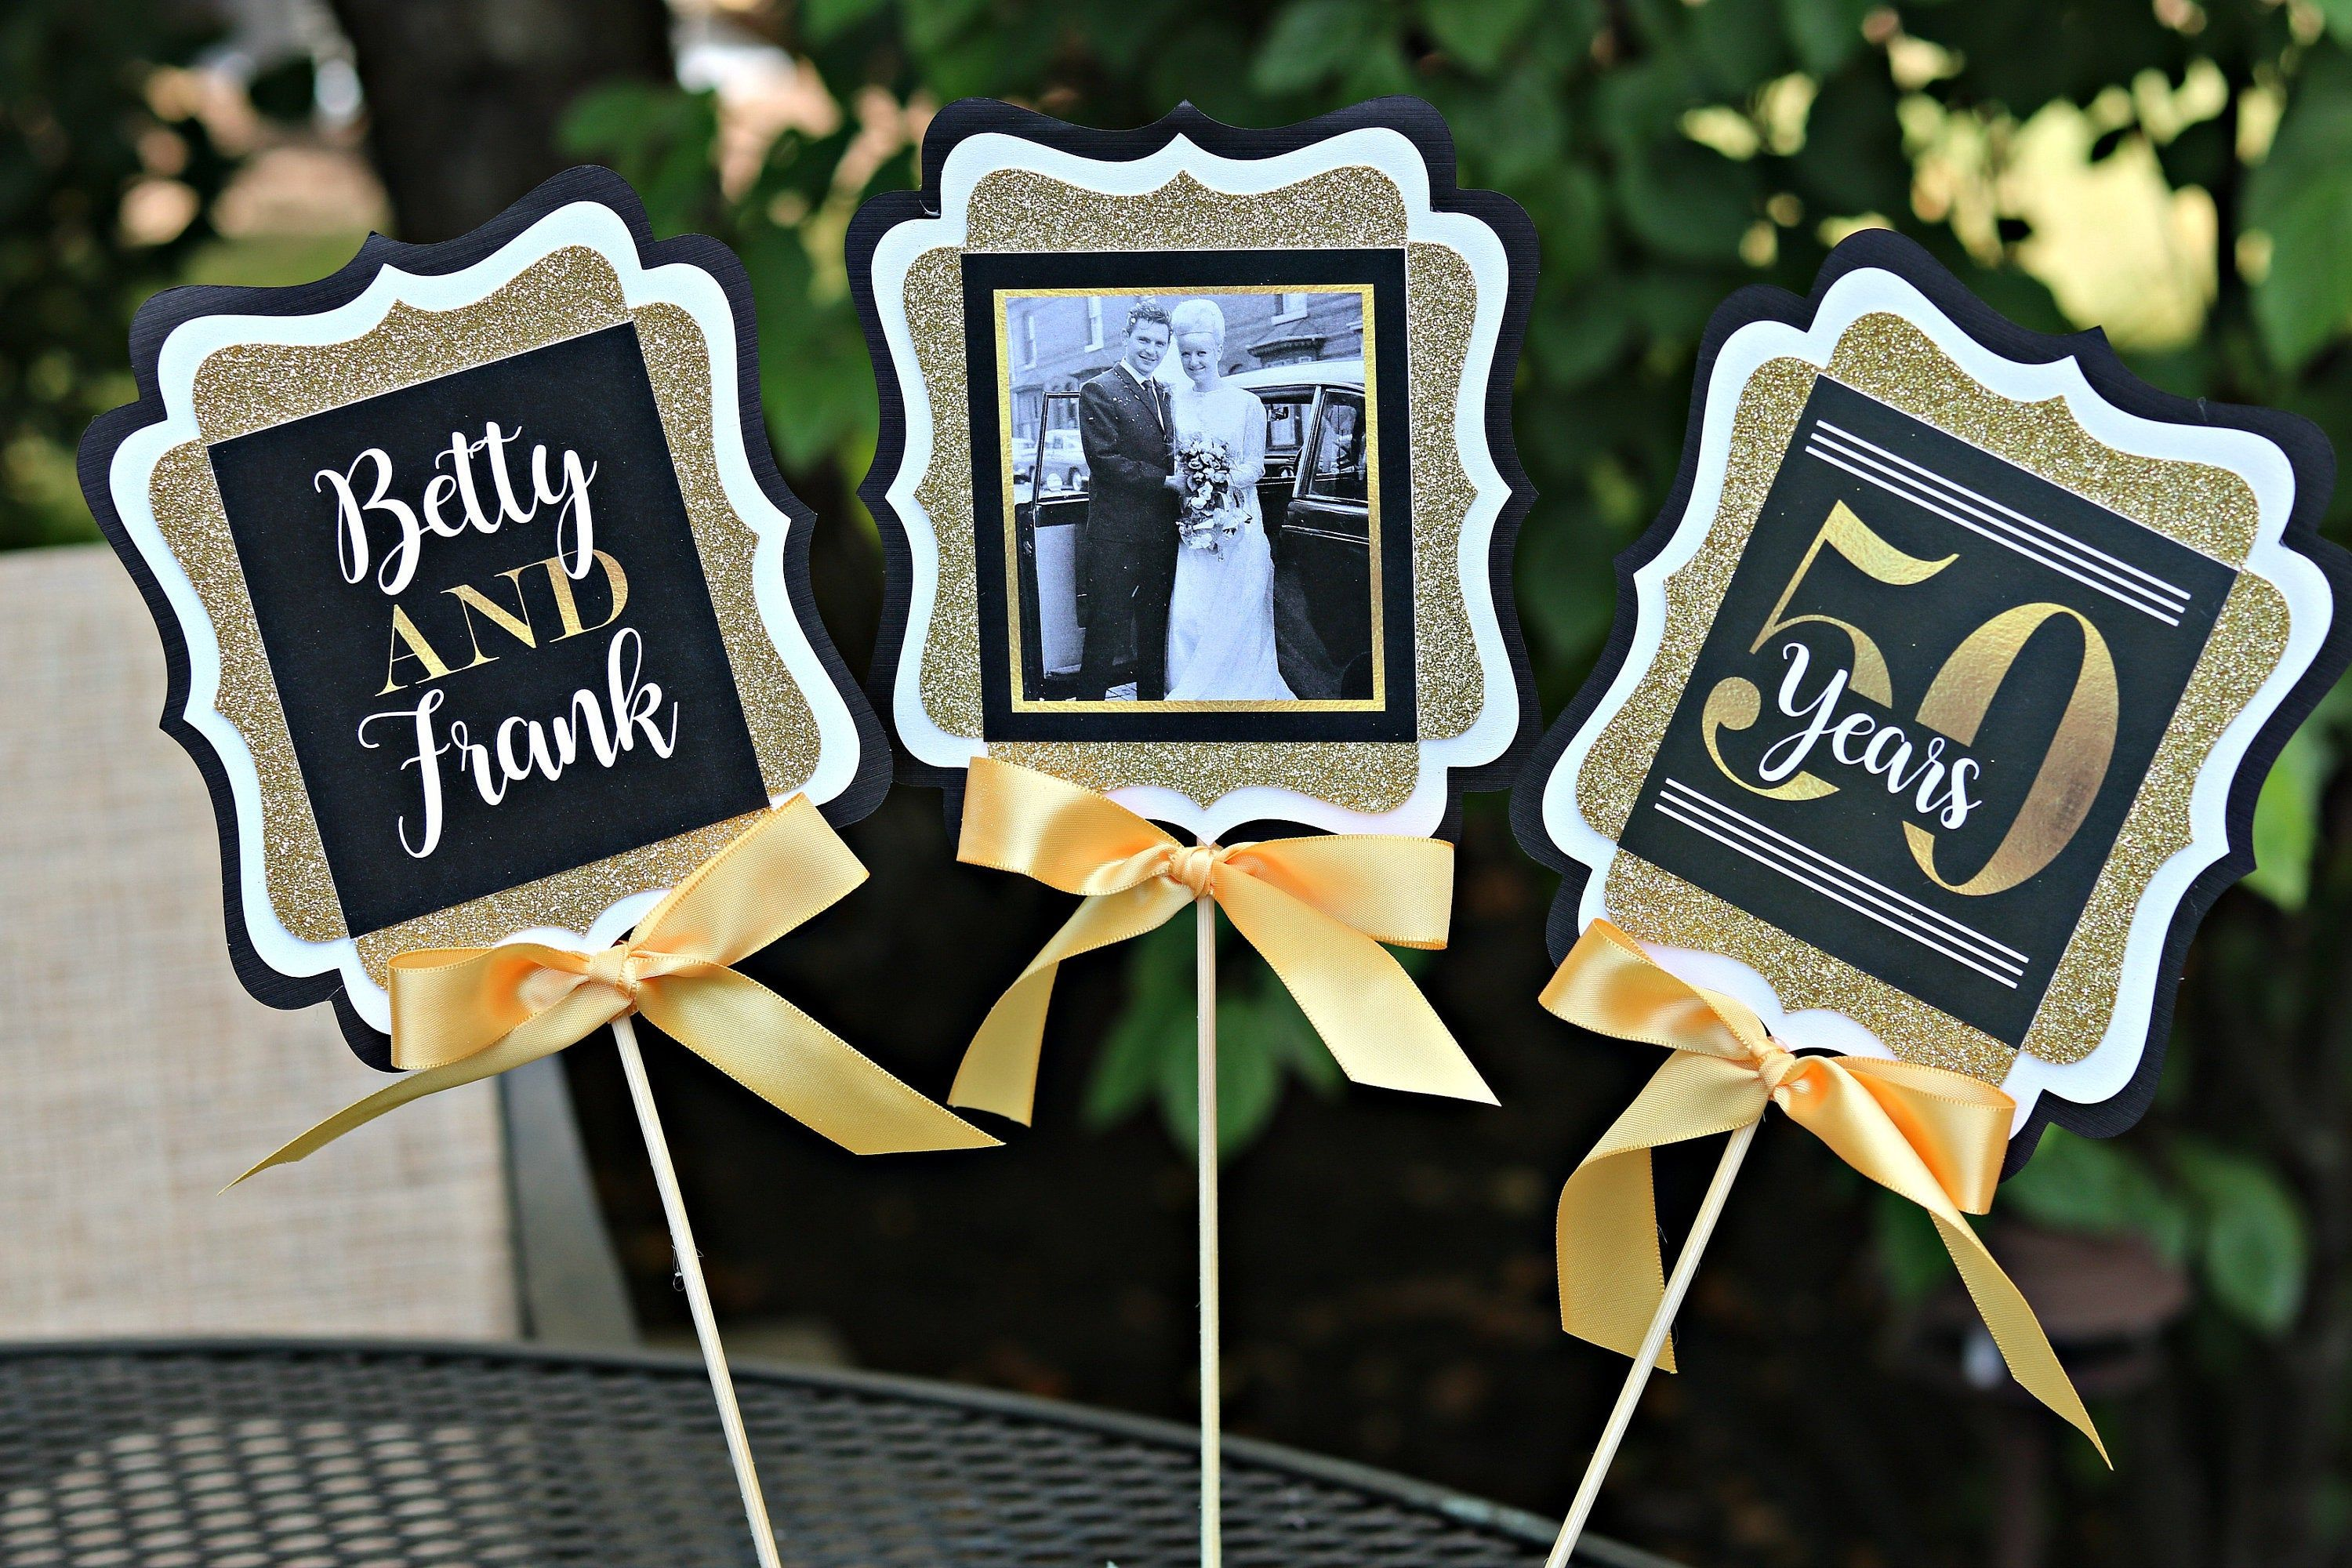 Golden Anniversary 50th Anniversary Party Decorations Etsy 50th Anniversary Party Decorations 50th Anniversary Party Wedding Anniversary Decorations